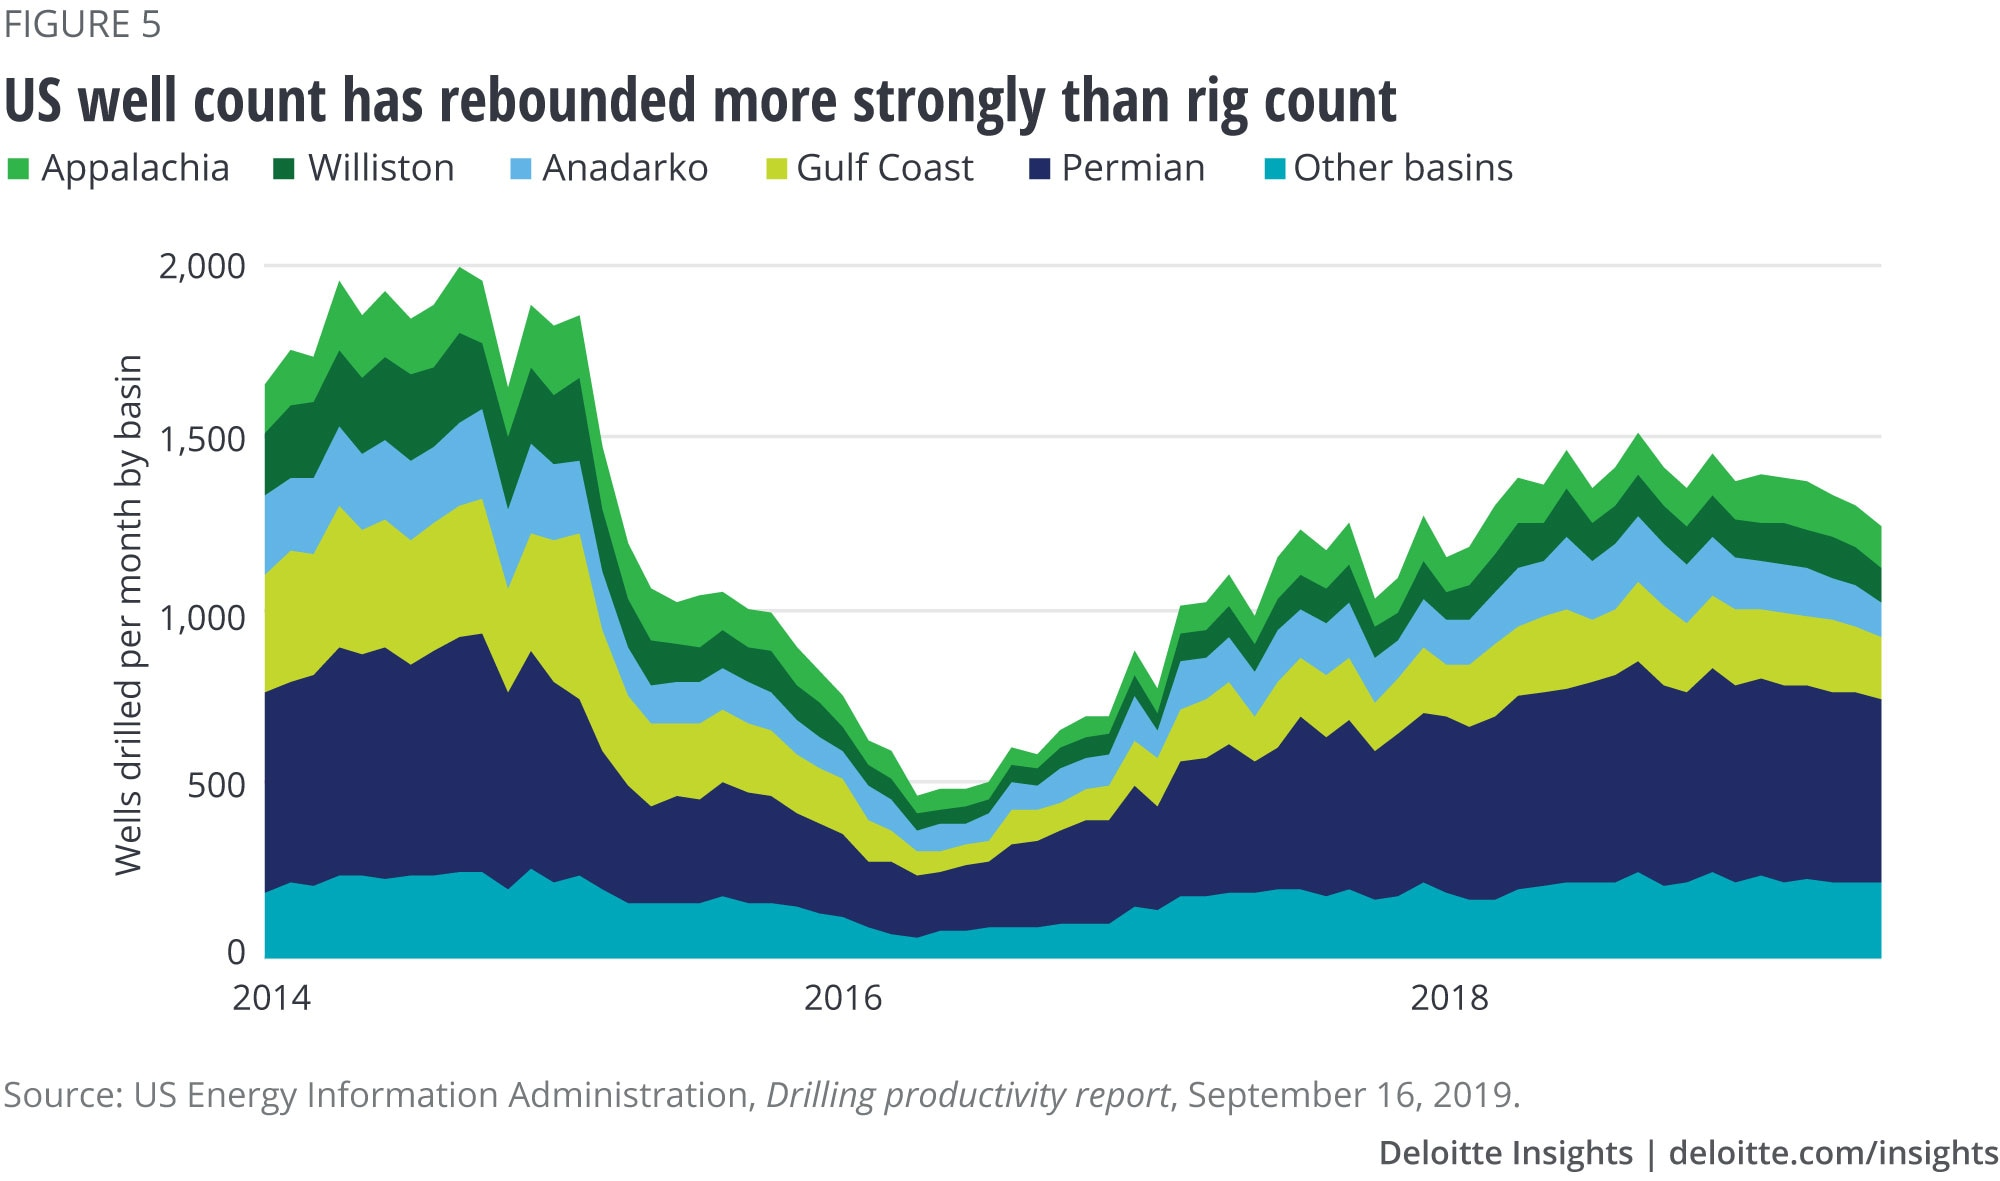 US well count has rebounded more strongly than rig count